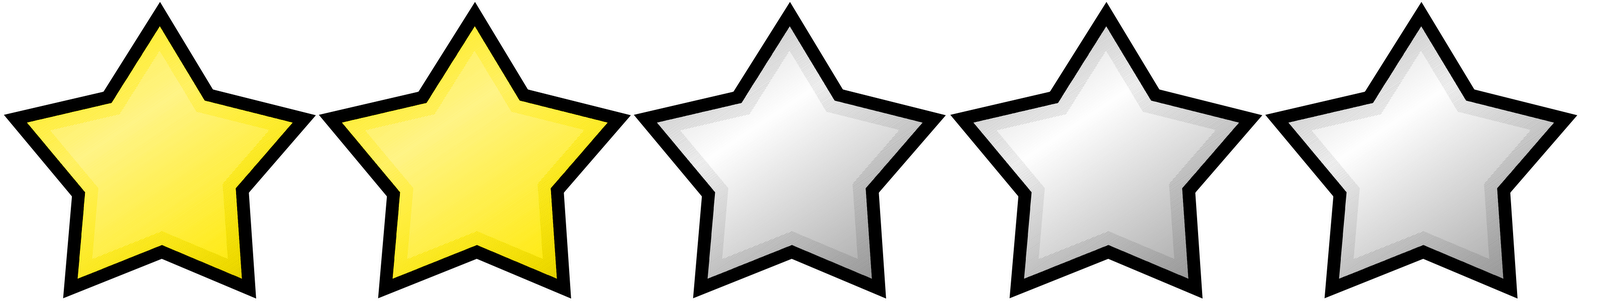 5 Star Images Clipart.